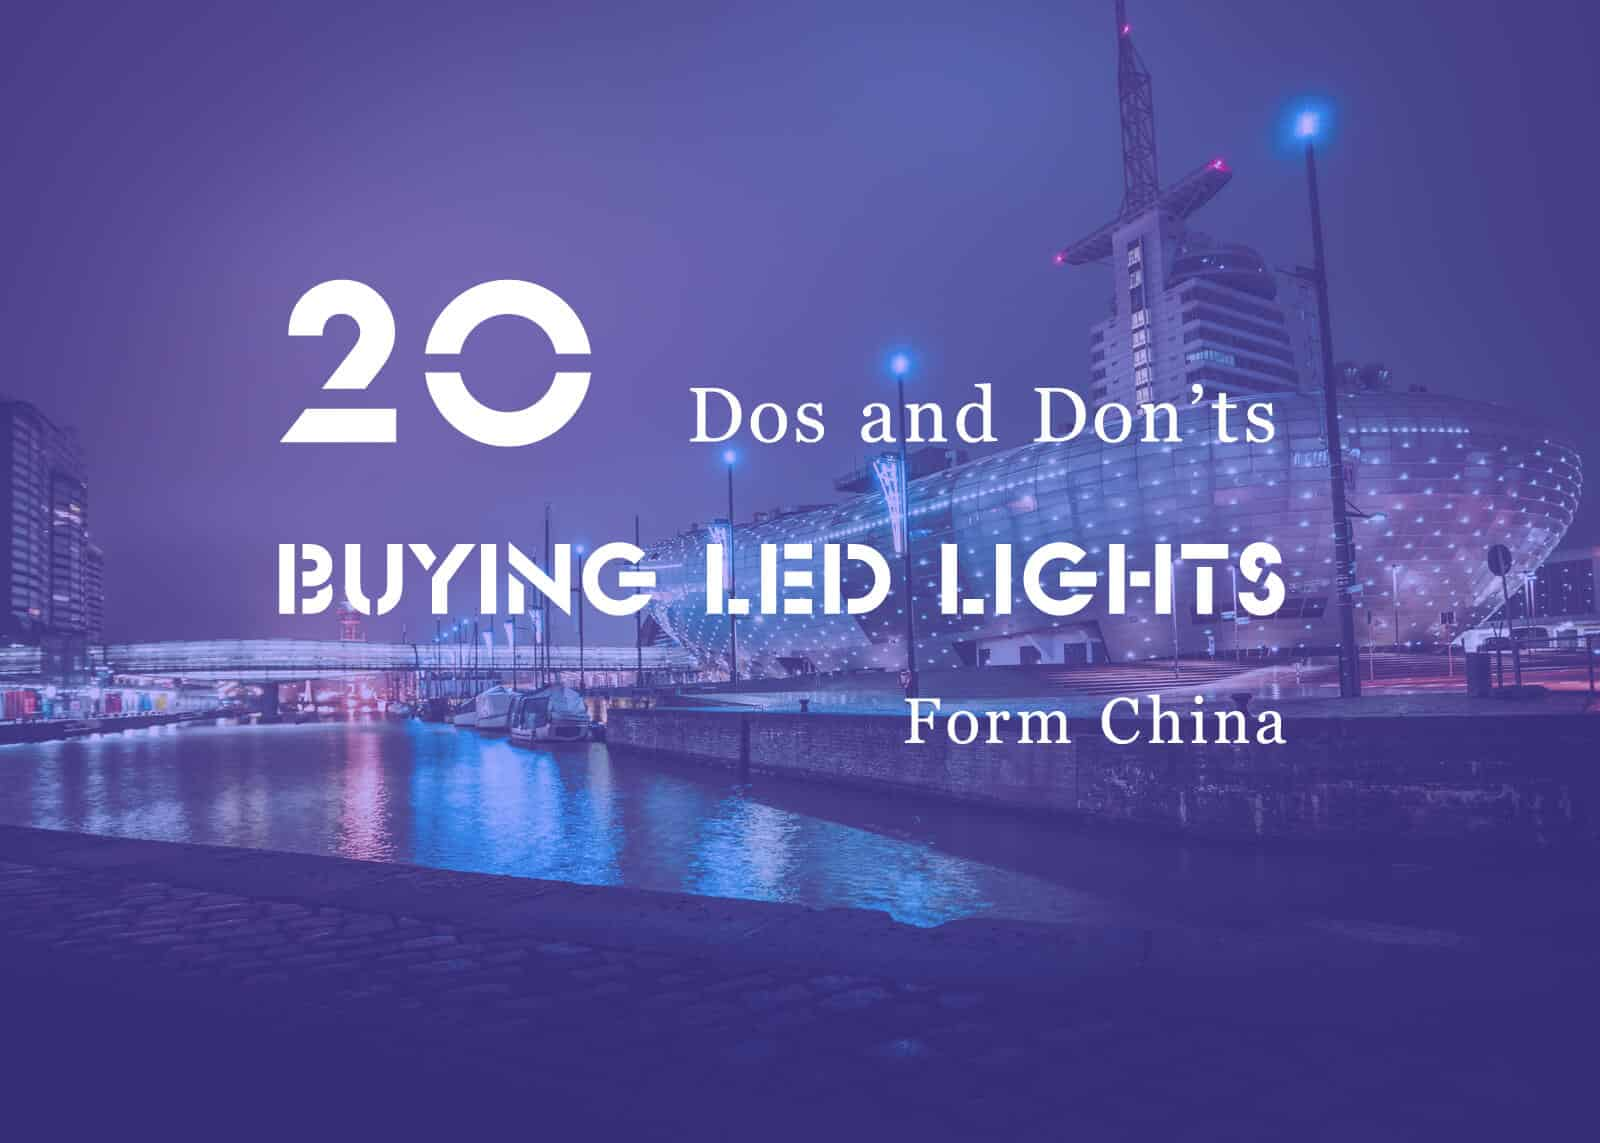 20 dos and don'ts tips Buying LED lights blog image